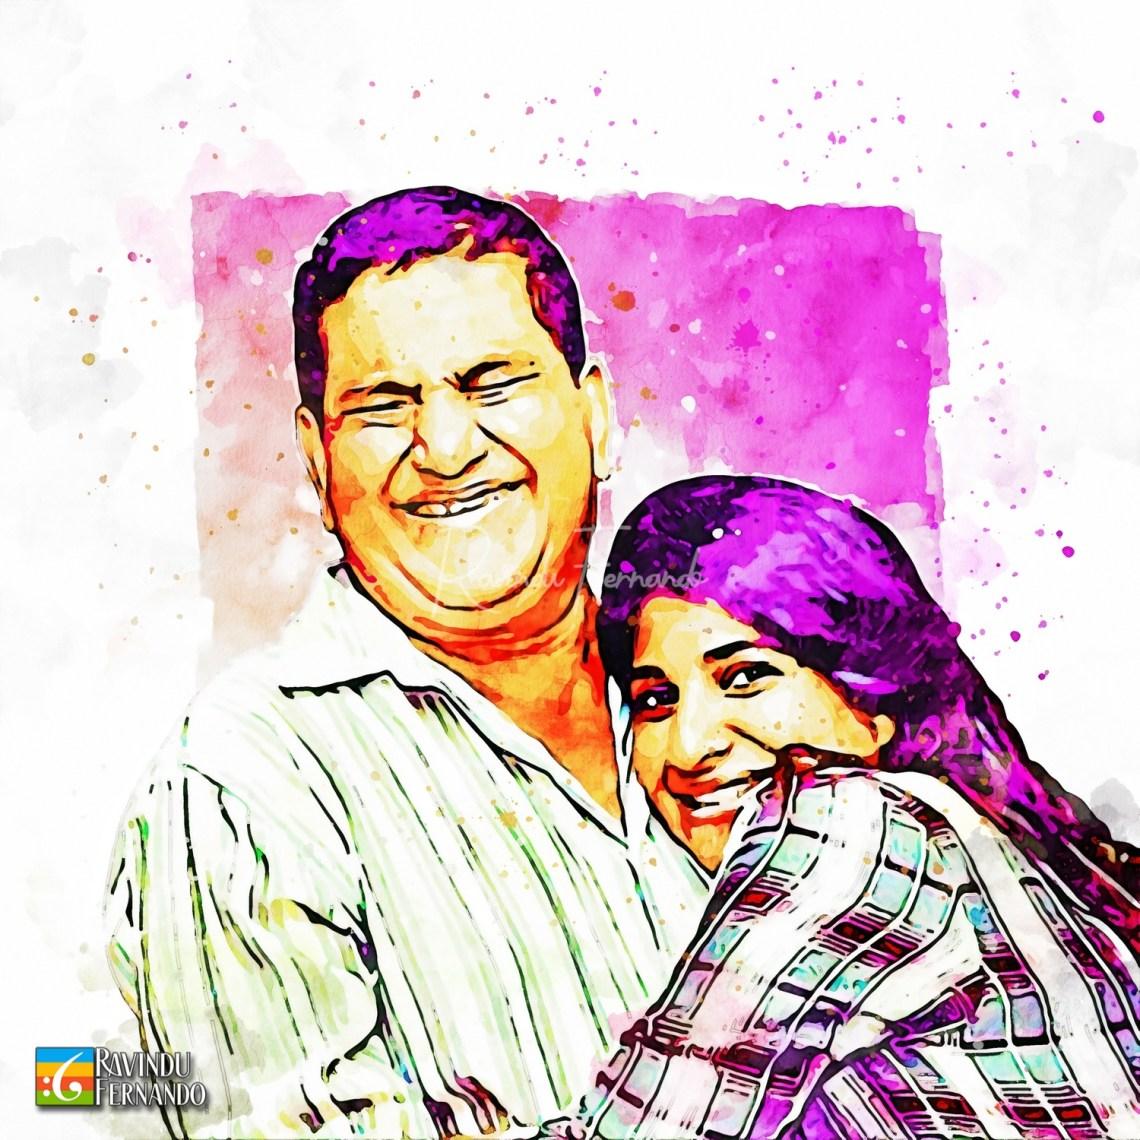 Samanalee Fonseka and her father - Digital Watercolor Painting